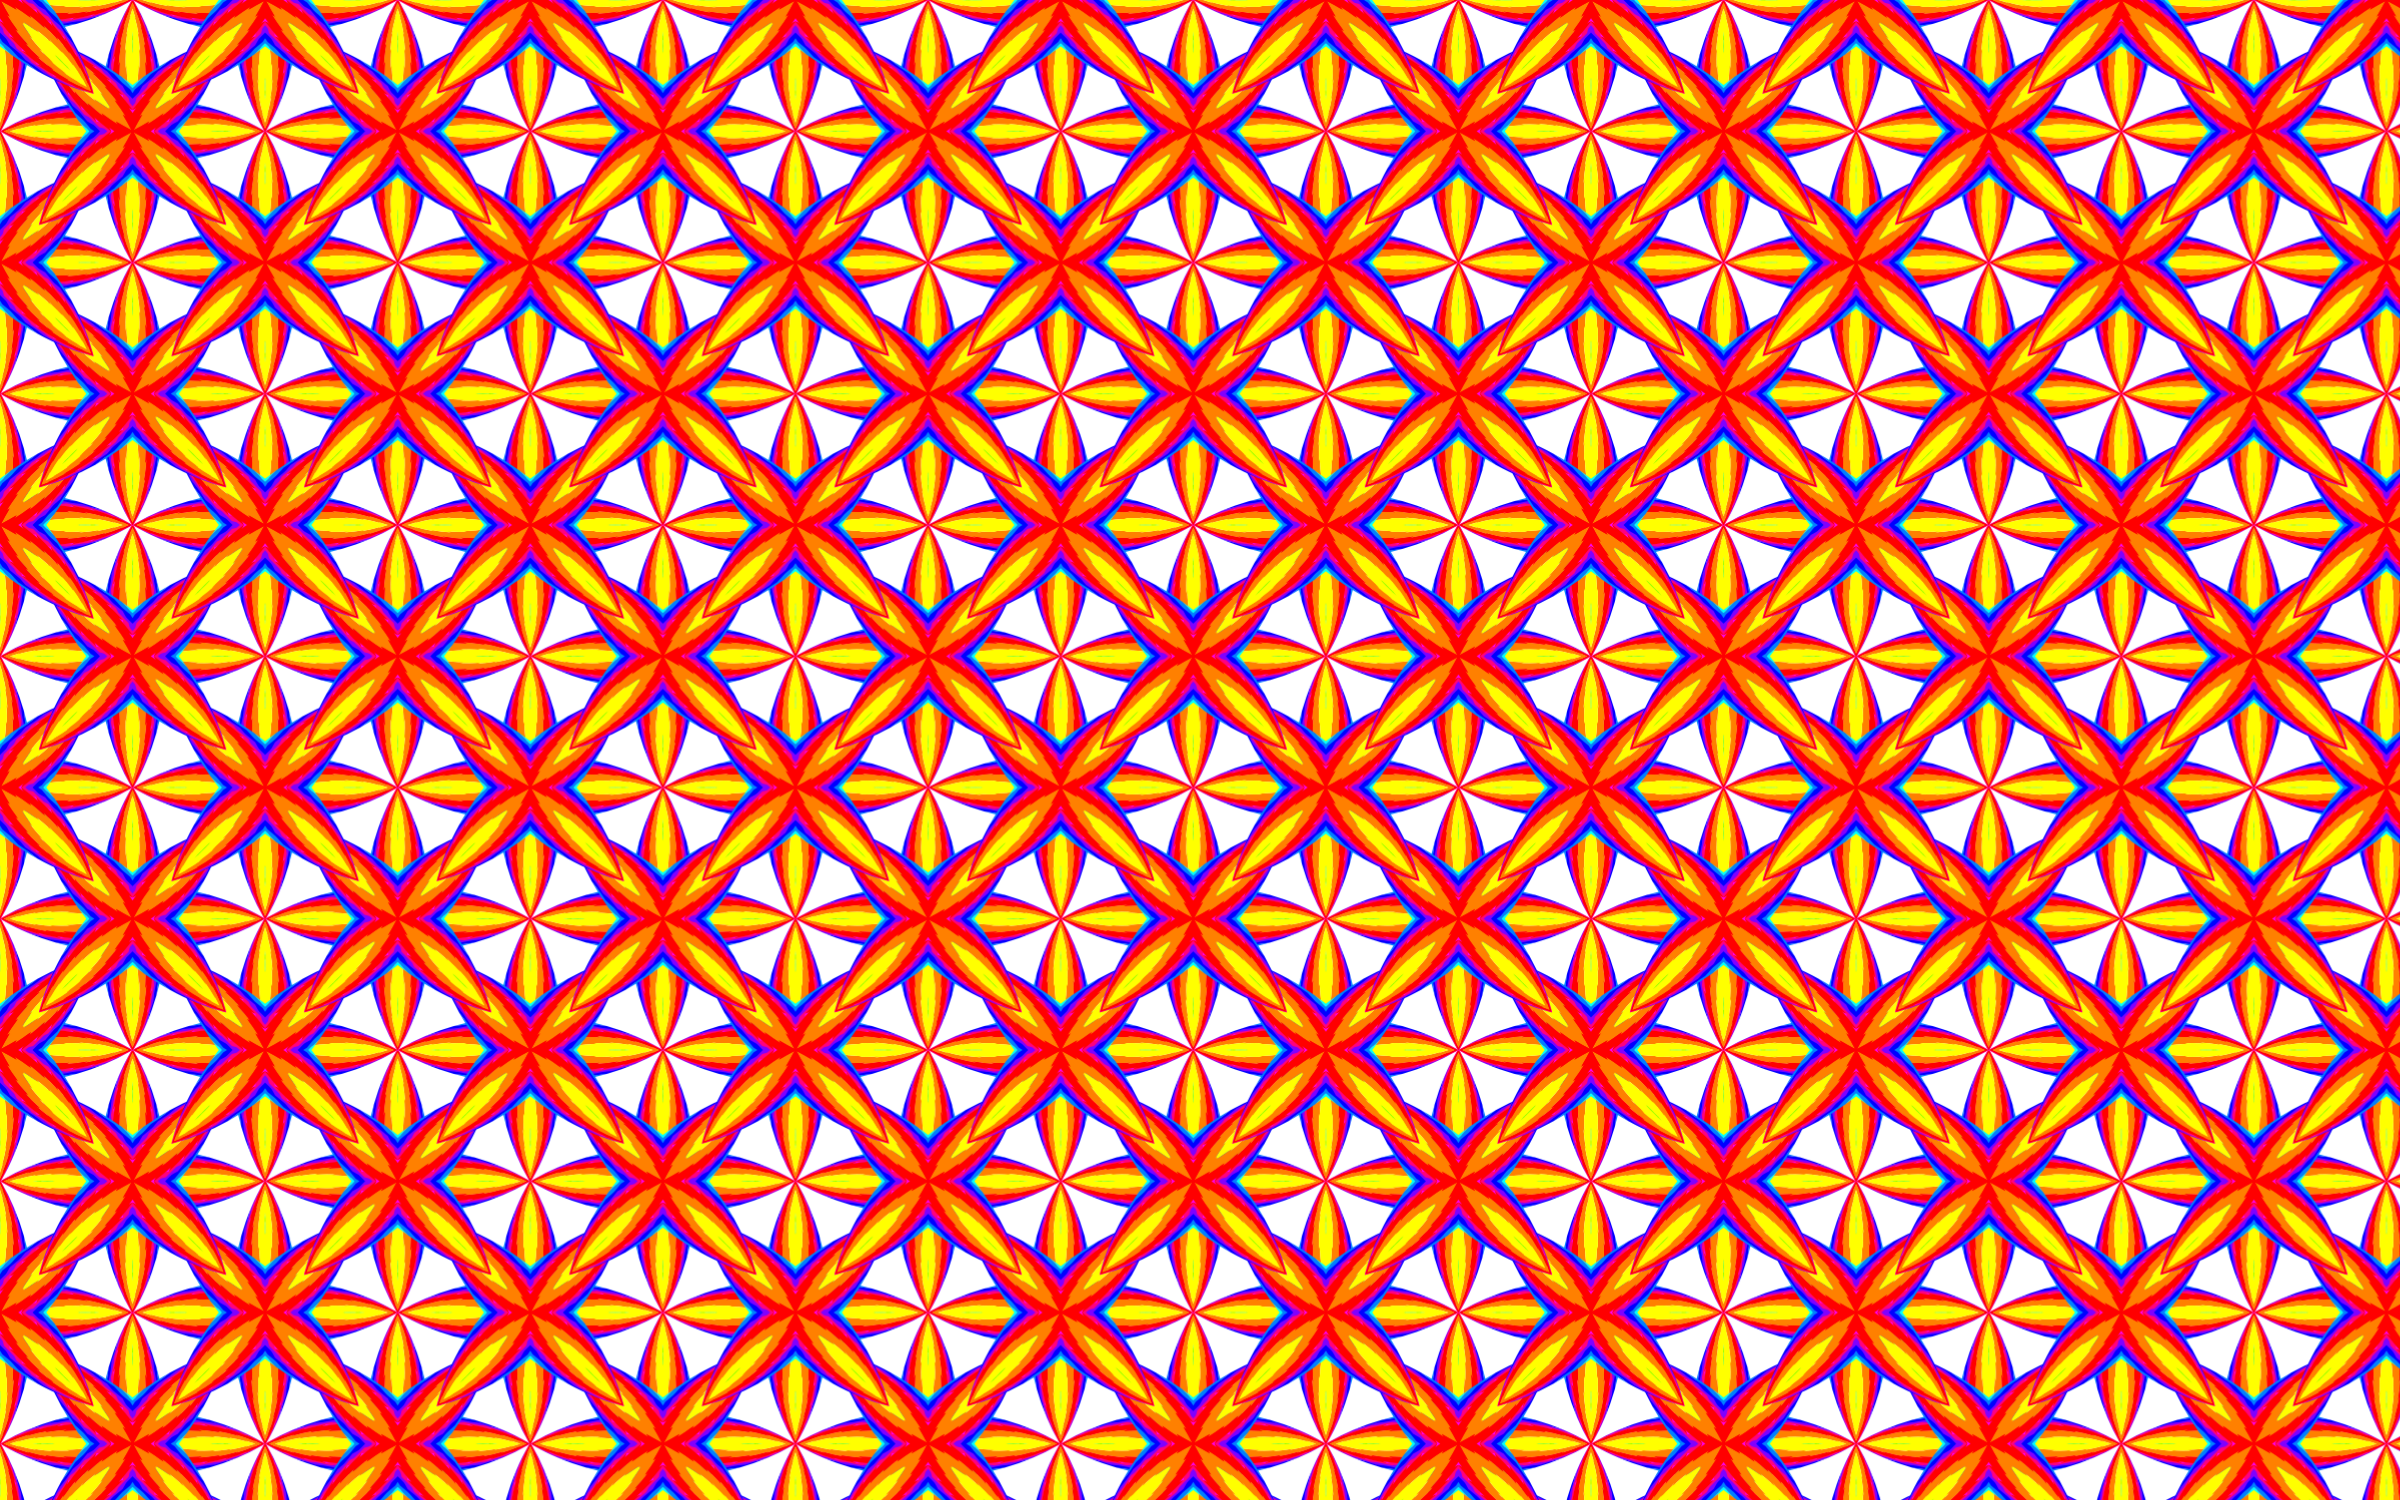 Seamless Groovy Geometry Pattern 4 by GDJ